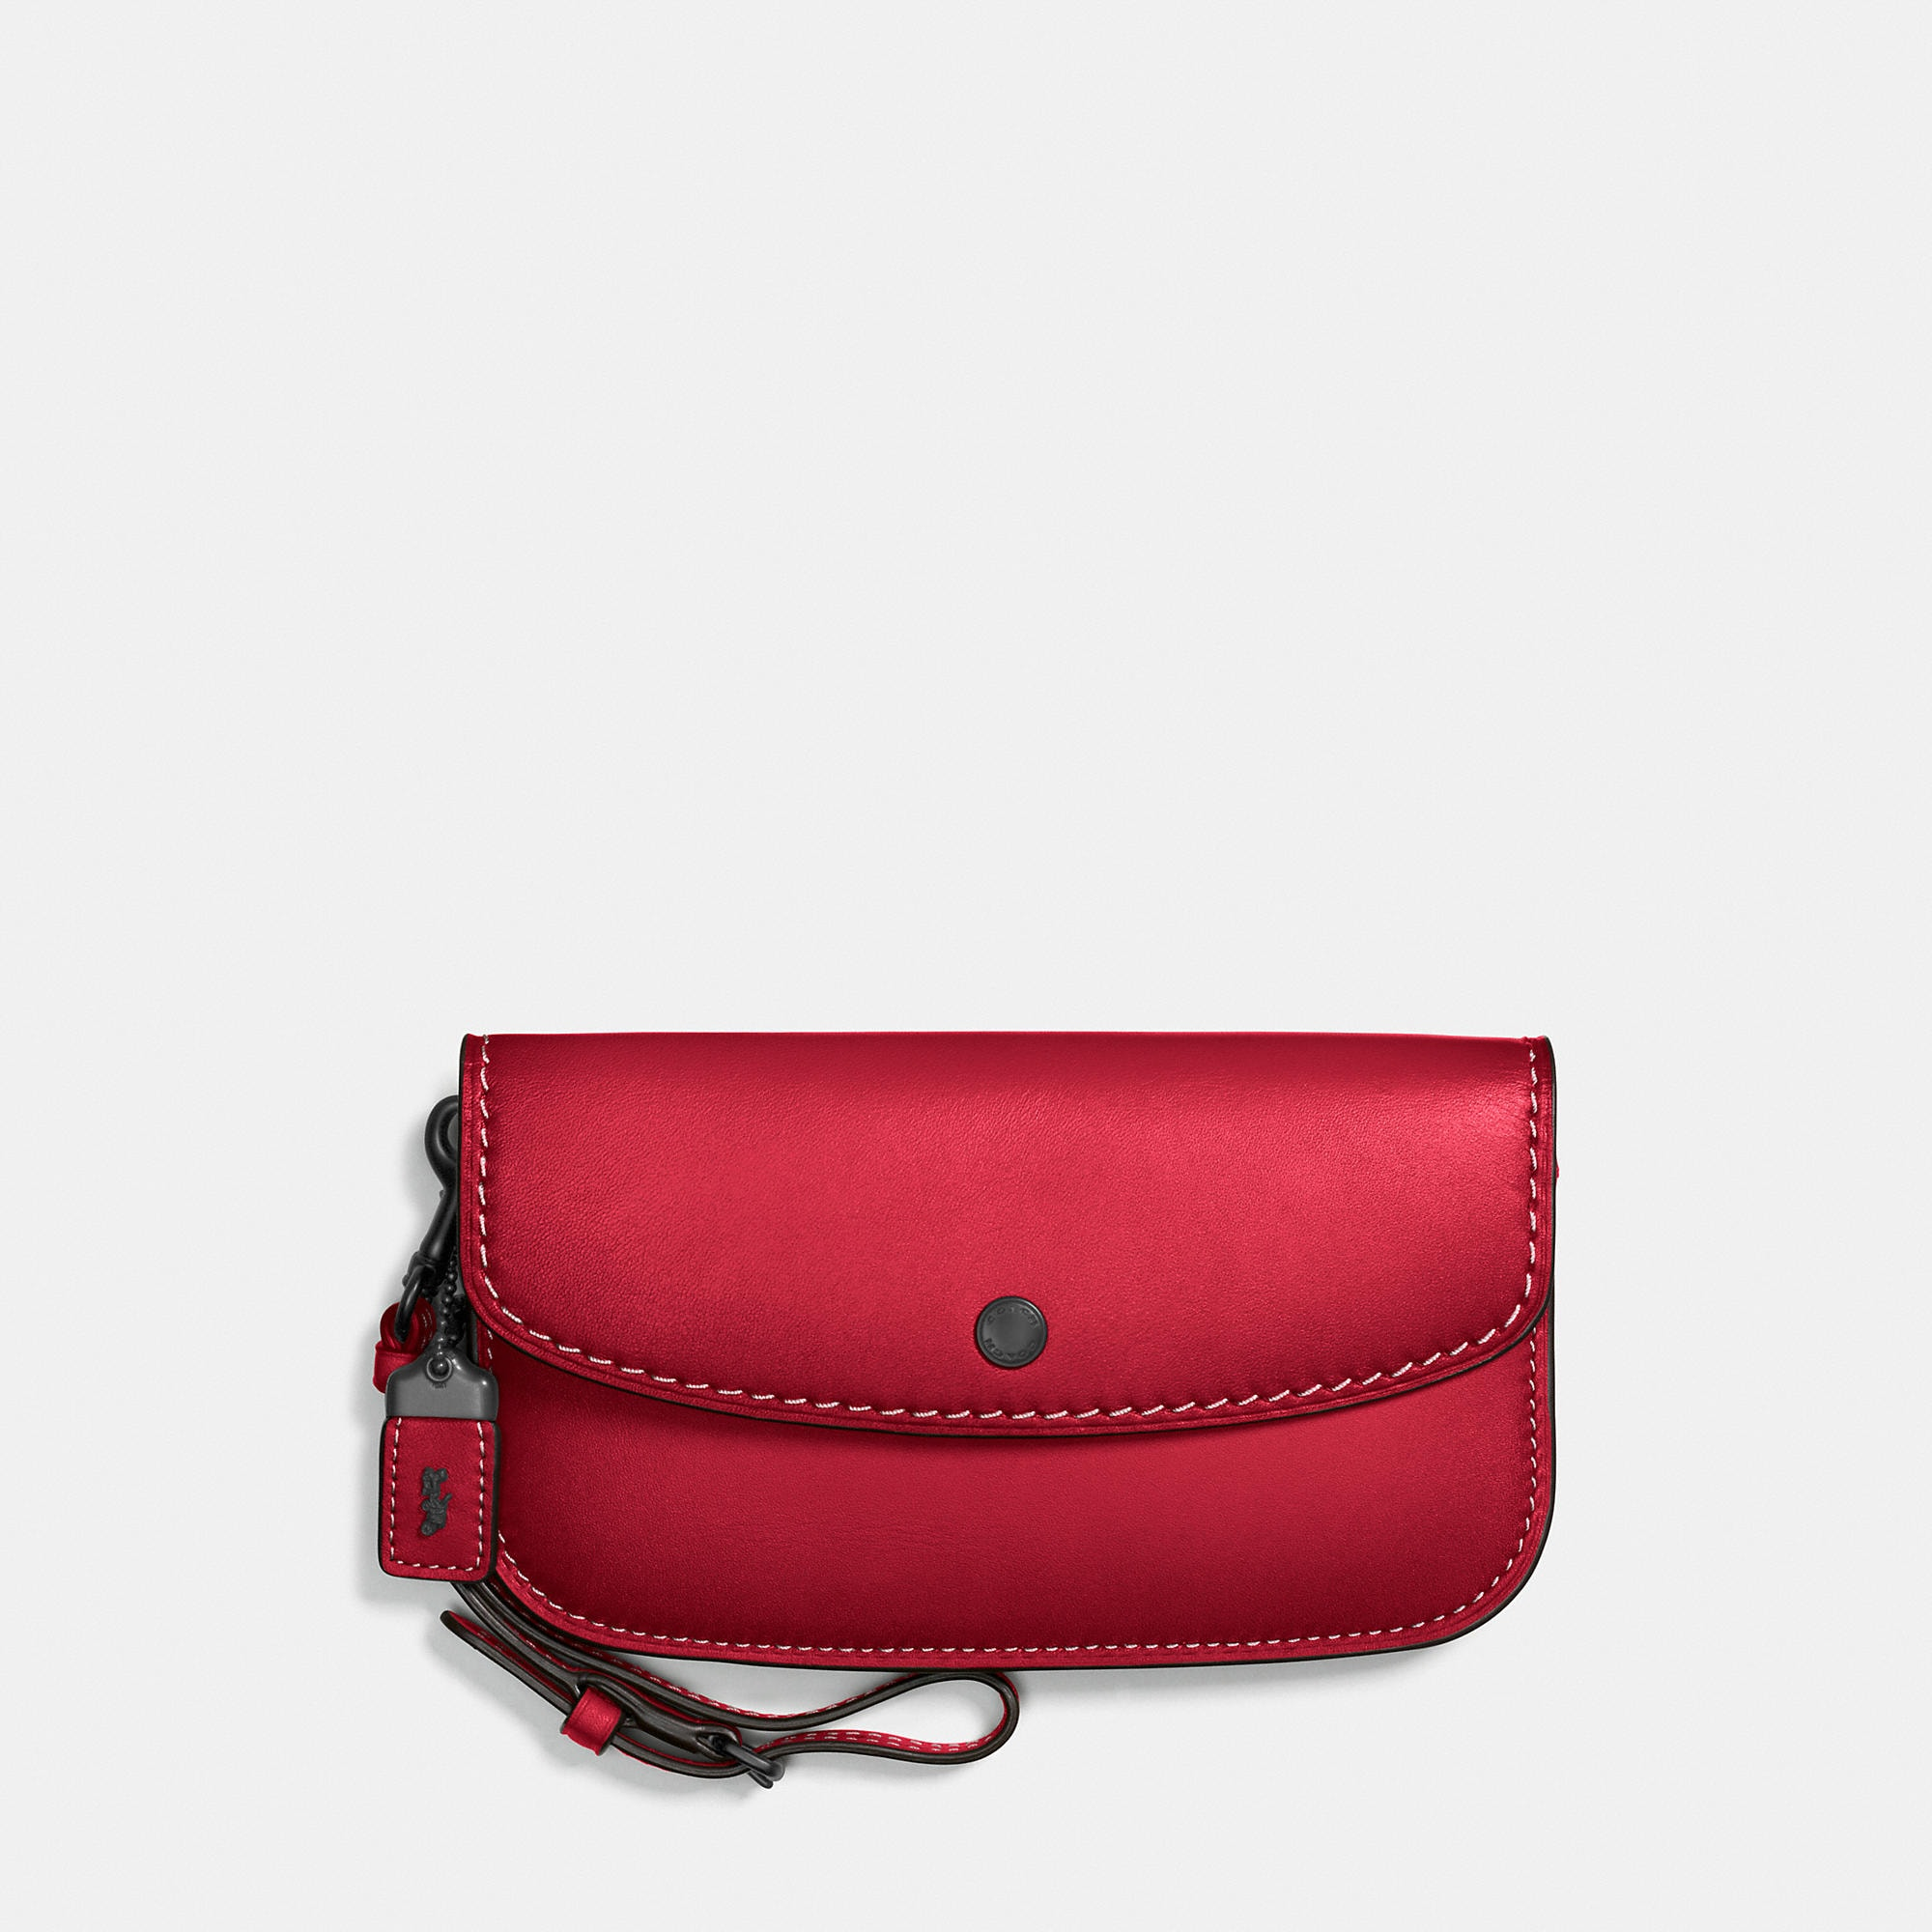 Coach Clutch In Glovetanned Leather